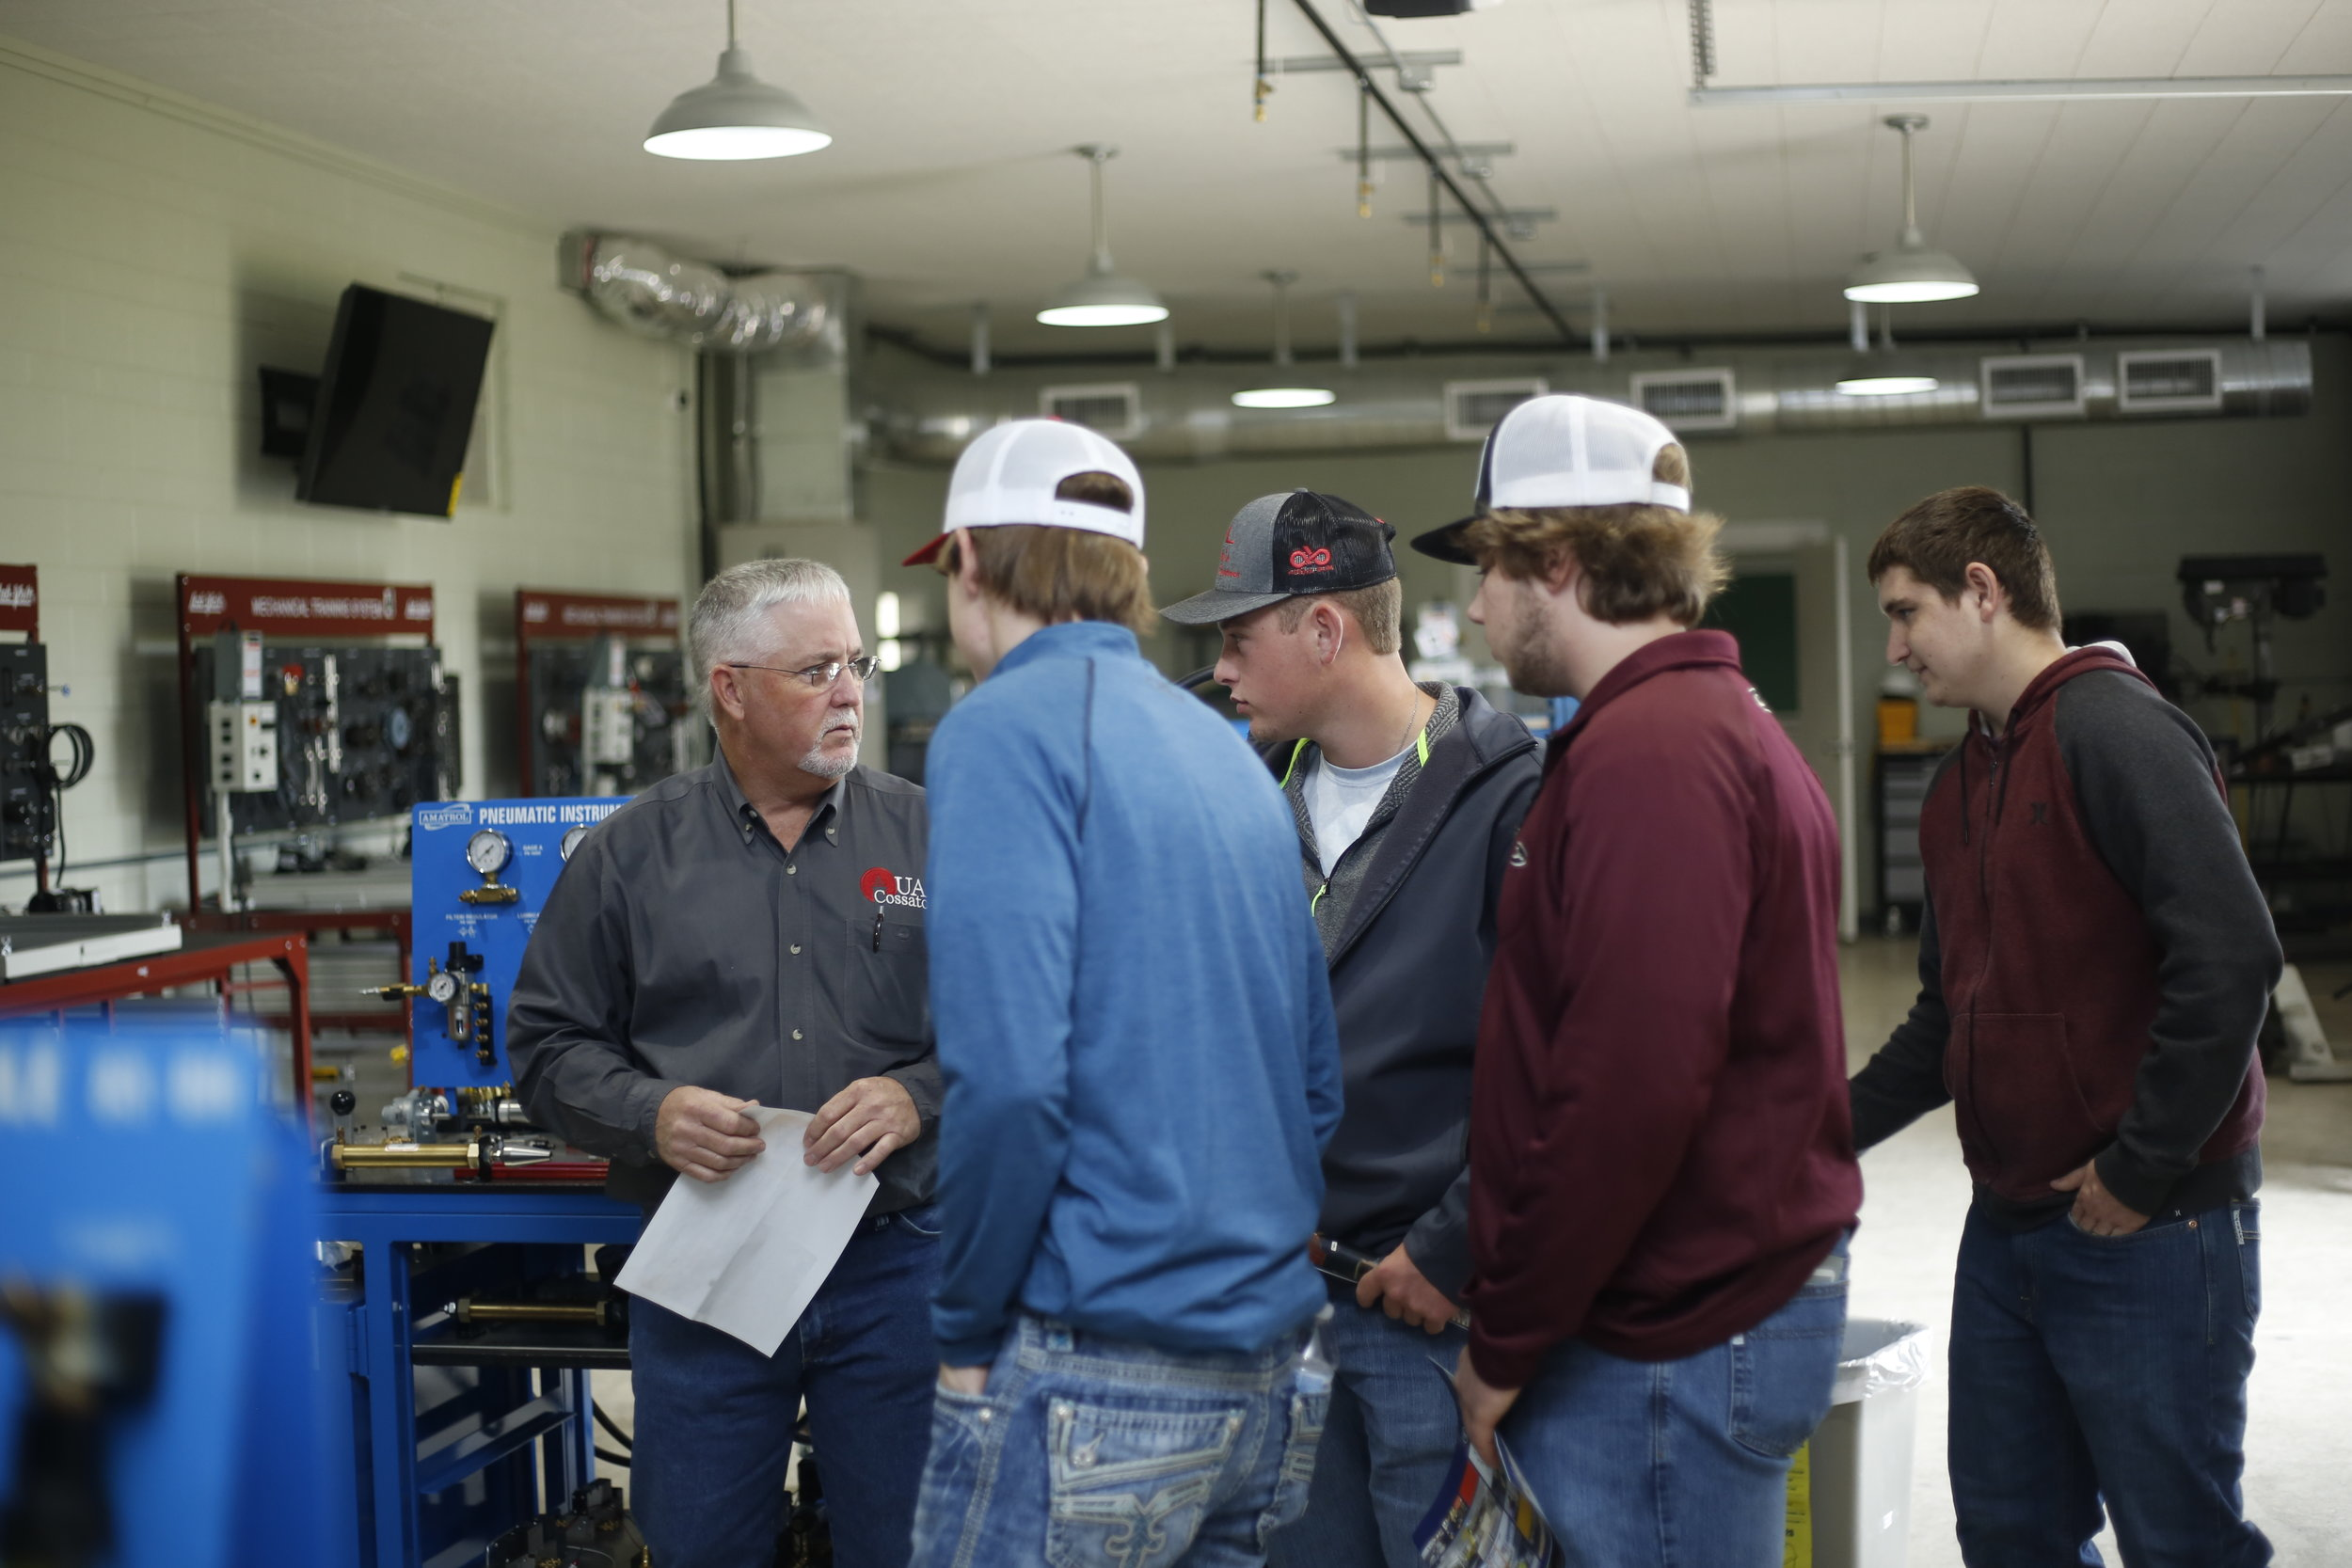 University of Arkansas Cossatot Industrial Technology Instructor Scott Surber discusses industrial maintenance and electricity training modules with high school students.